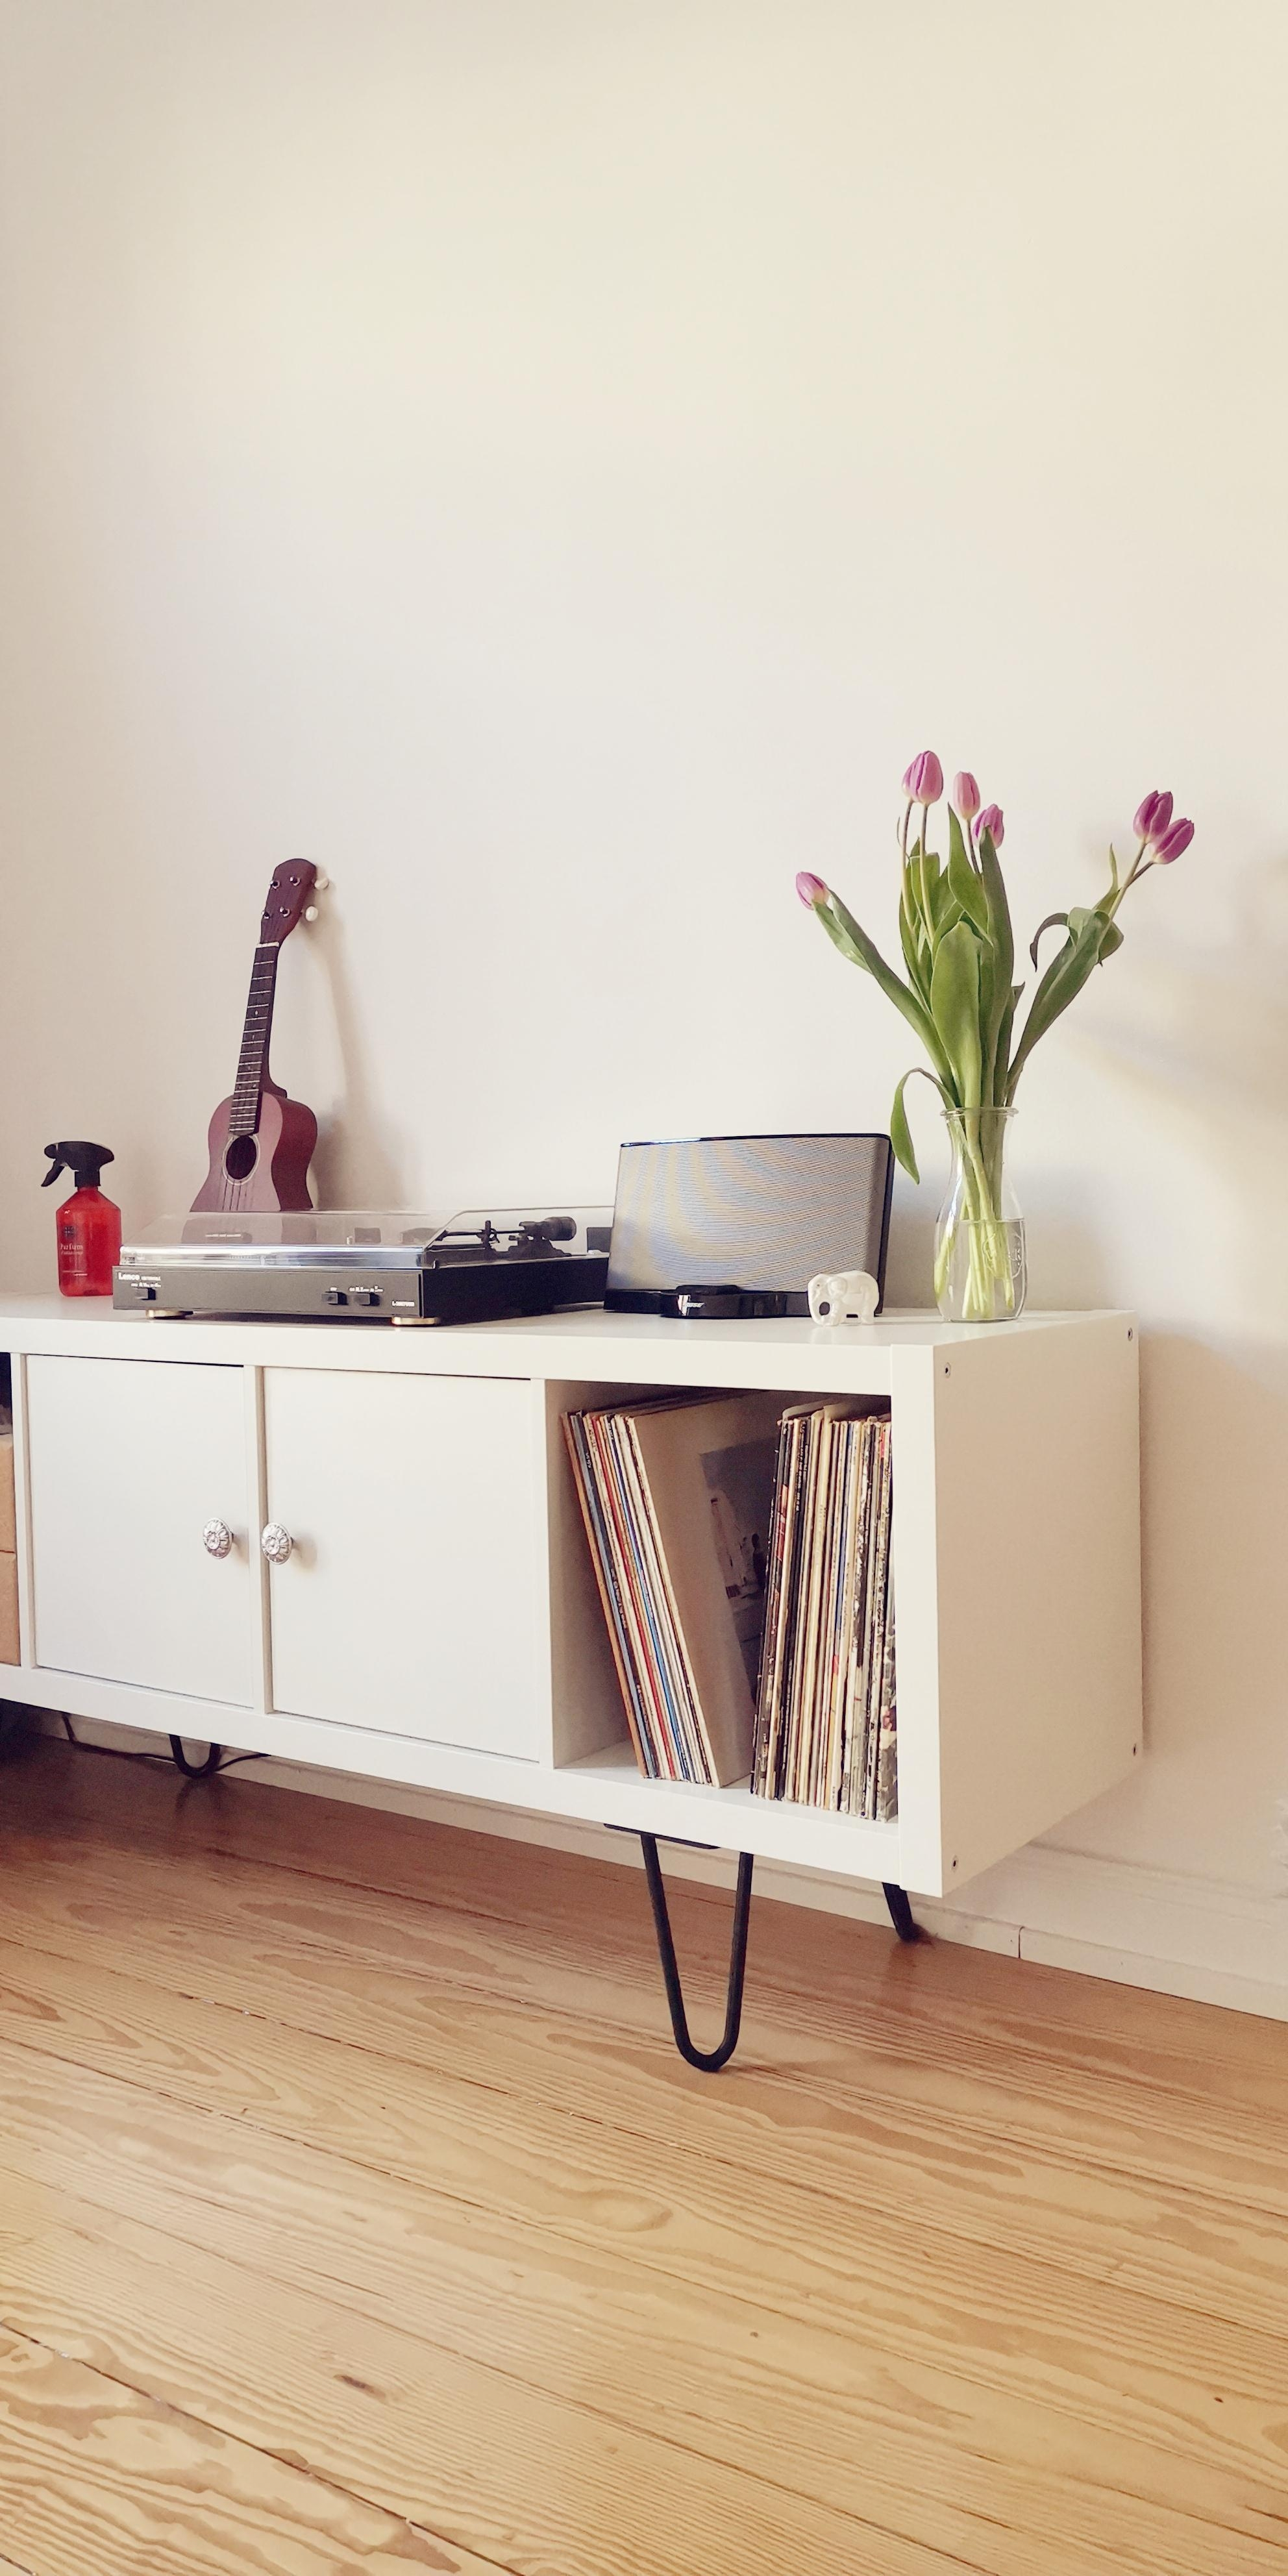 Organize and cleaning day